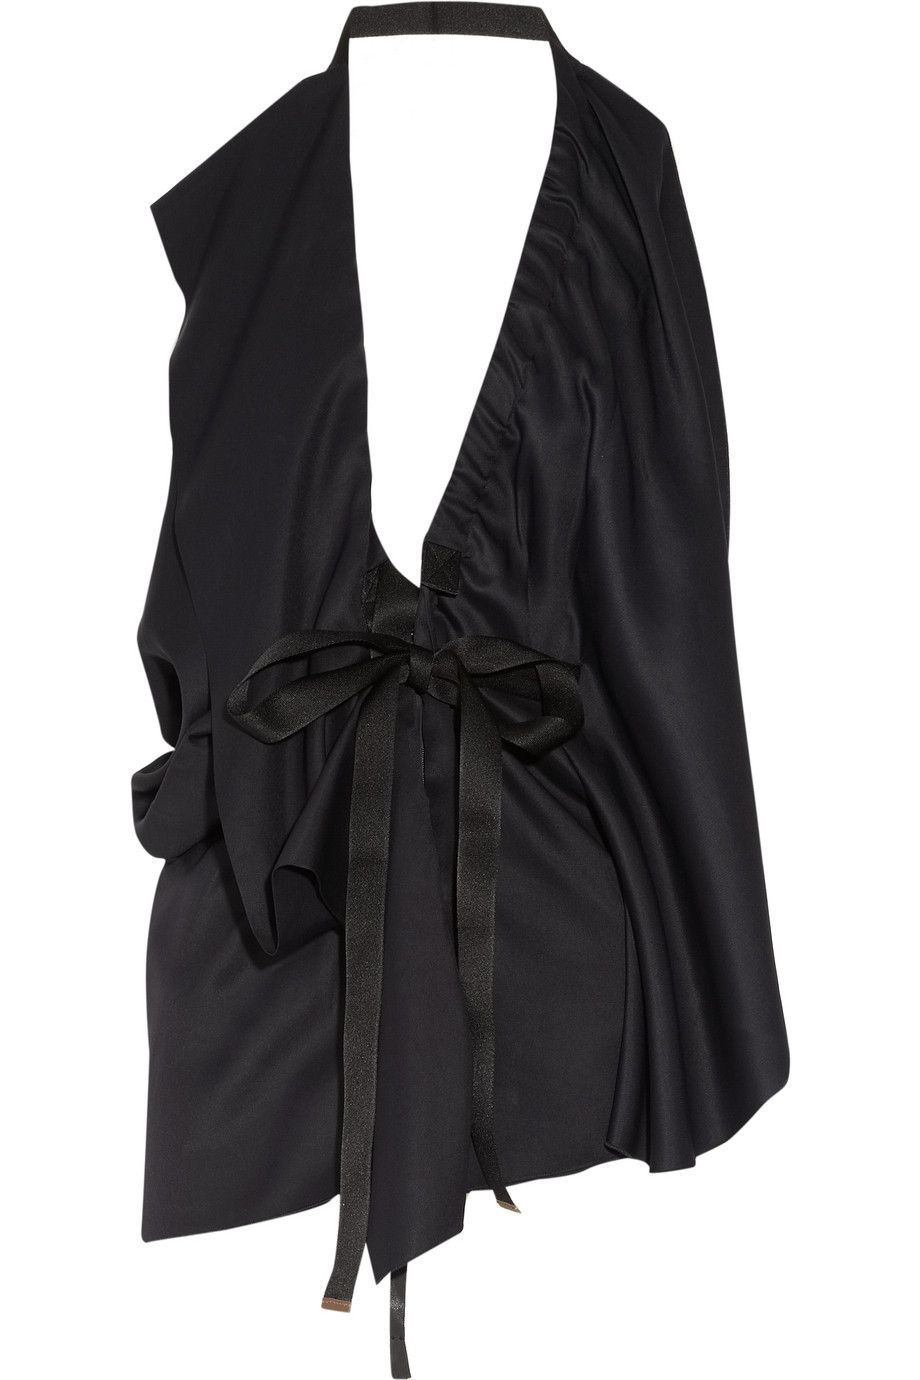 Marni Draped satin-twill top - 50% Off Now at THE OUTNET